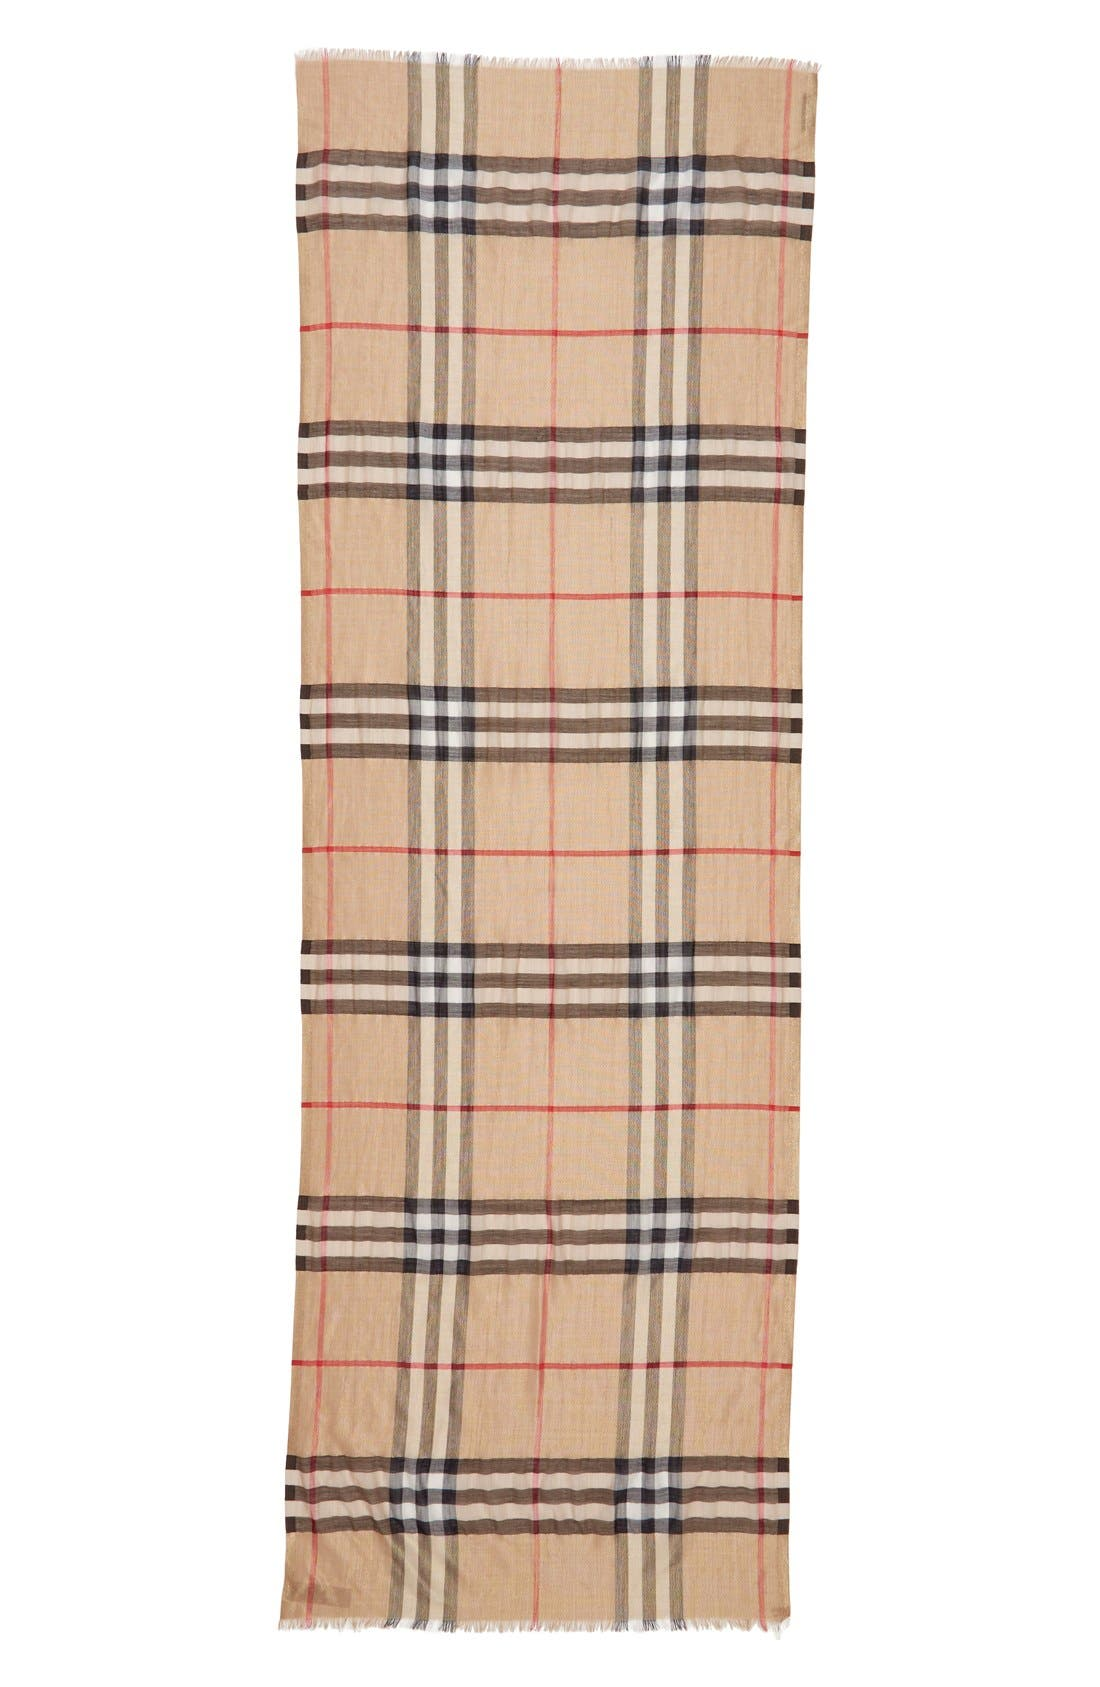 BURBERRY,                             Giant Check Scarf,                             Alternate thumbnail 6, color,                             250